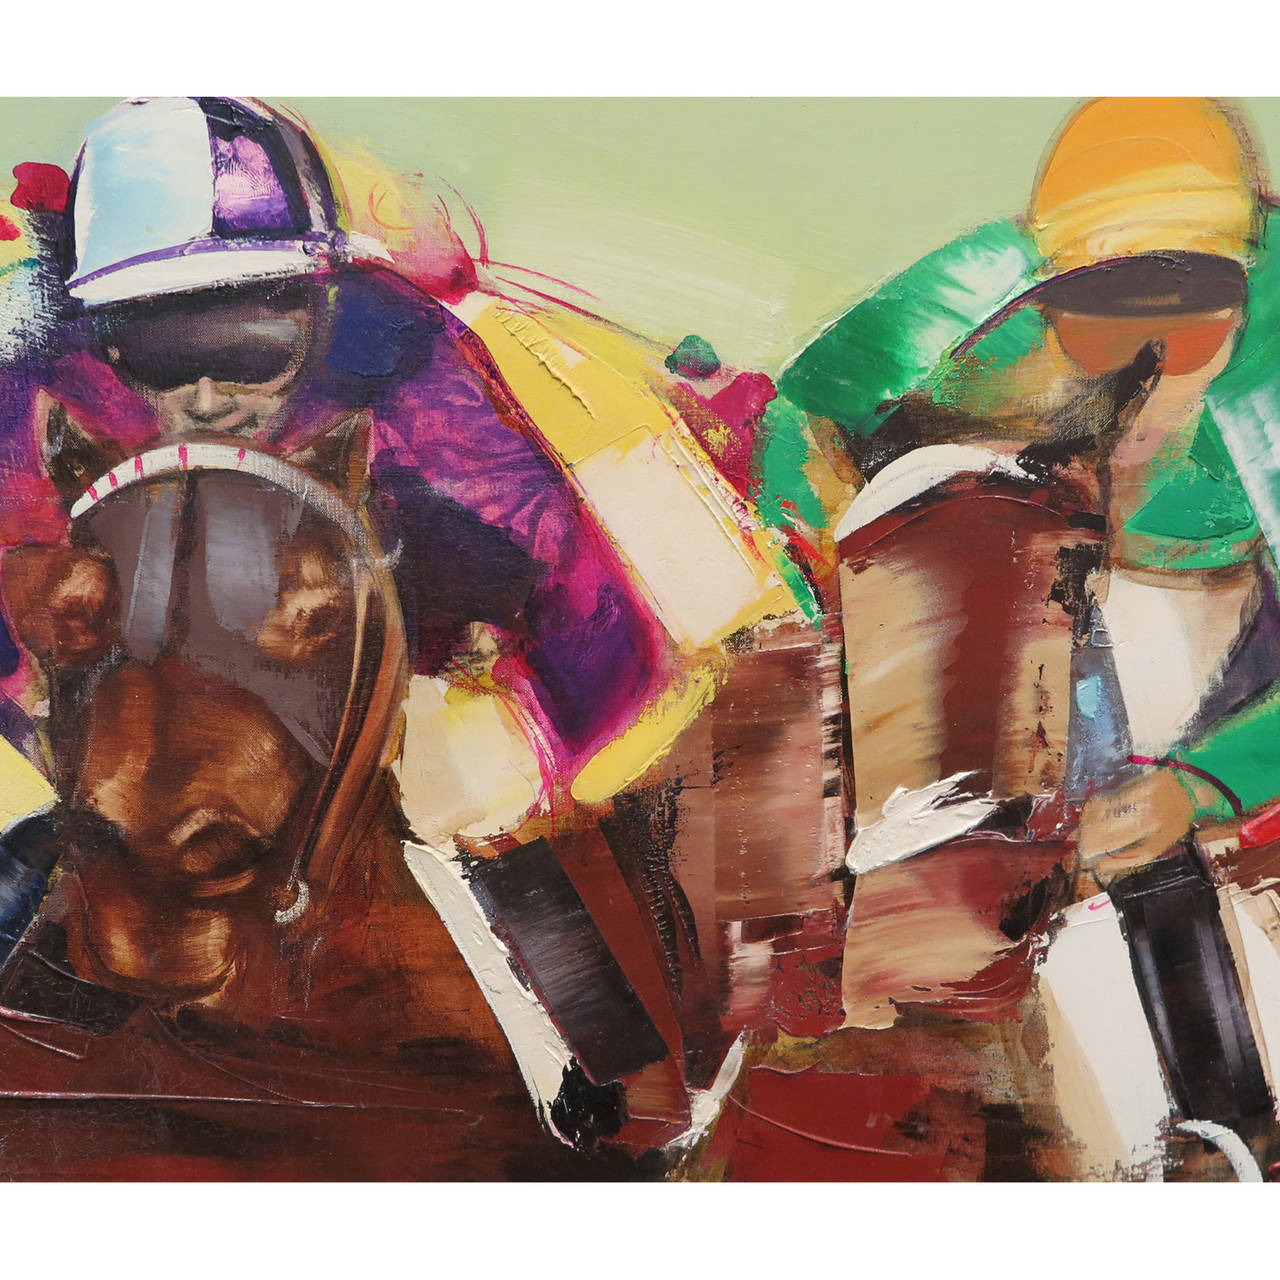 Exciting horse racing painting by Christian Jaureguy. Large-scale acrylic on canvas, titled